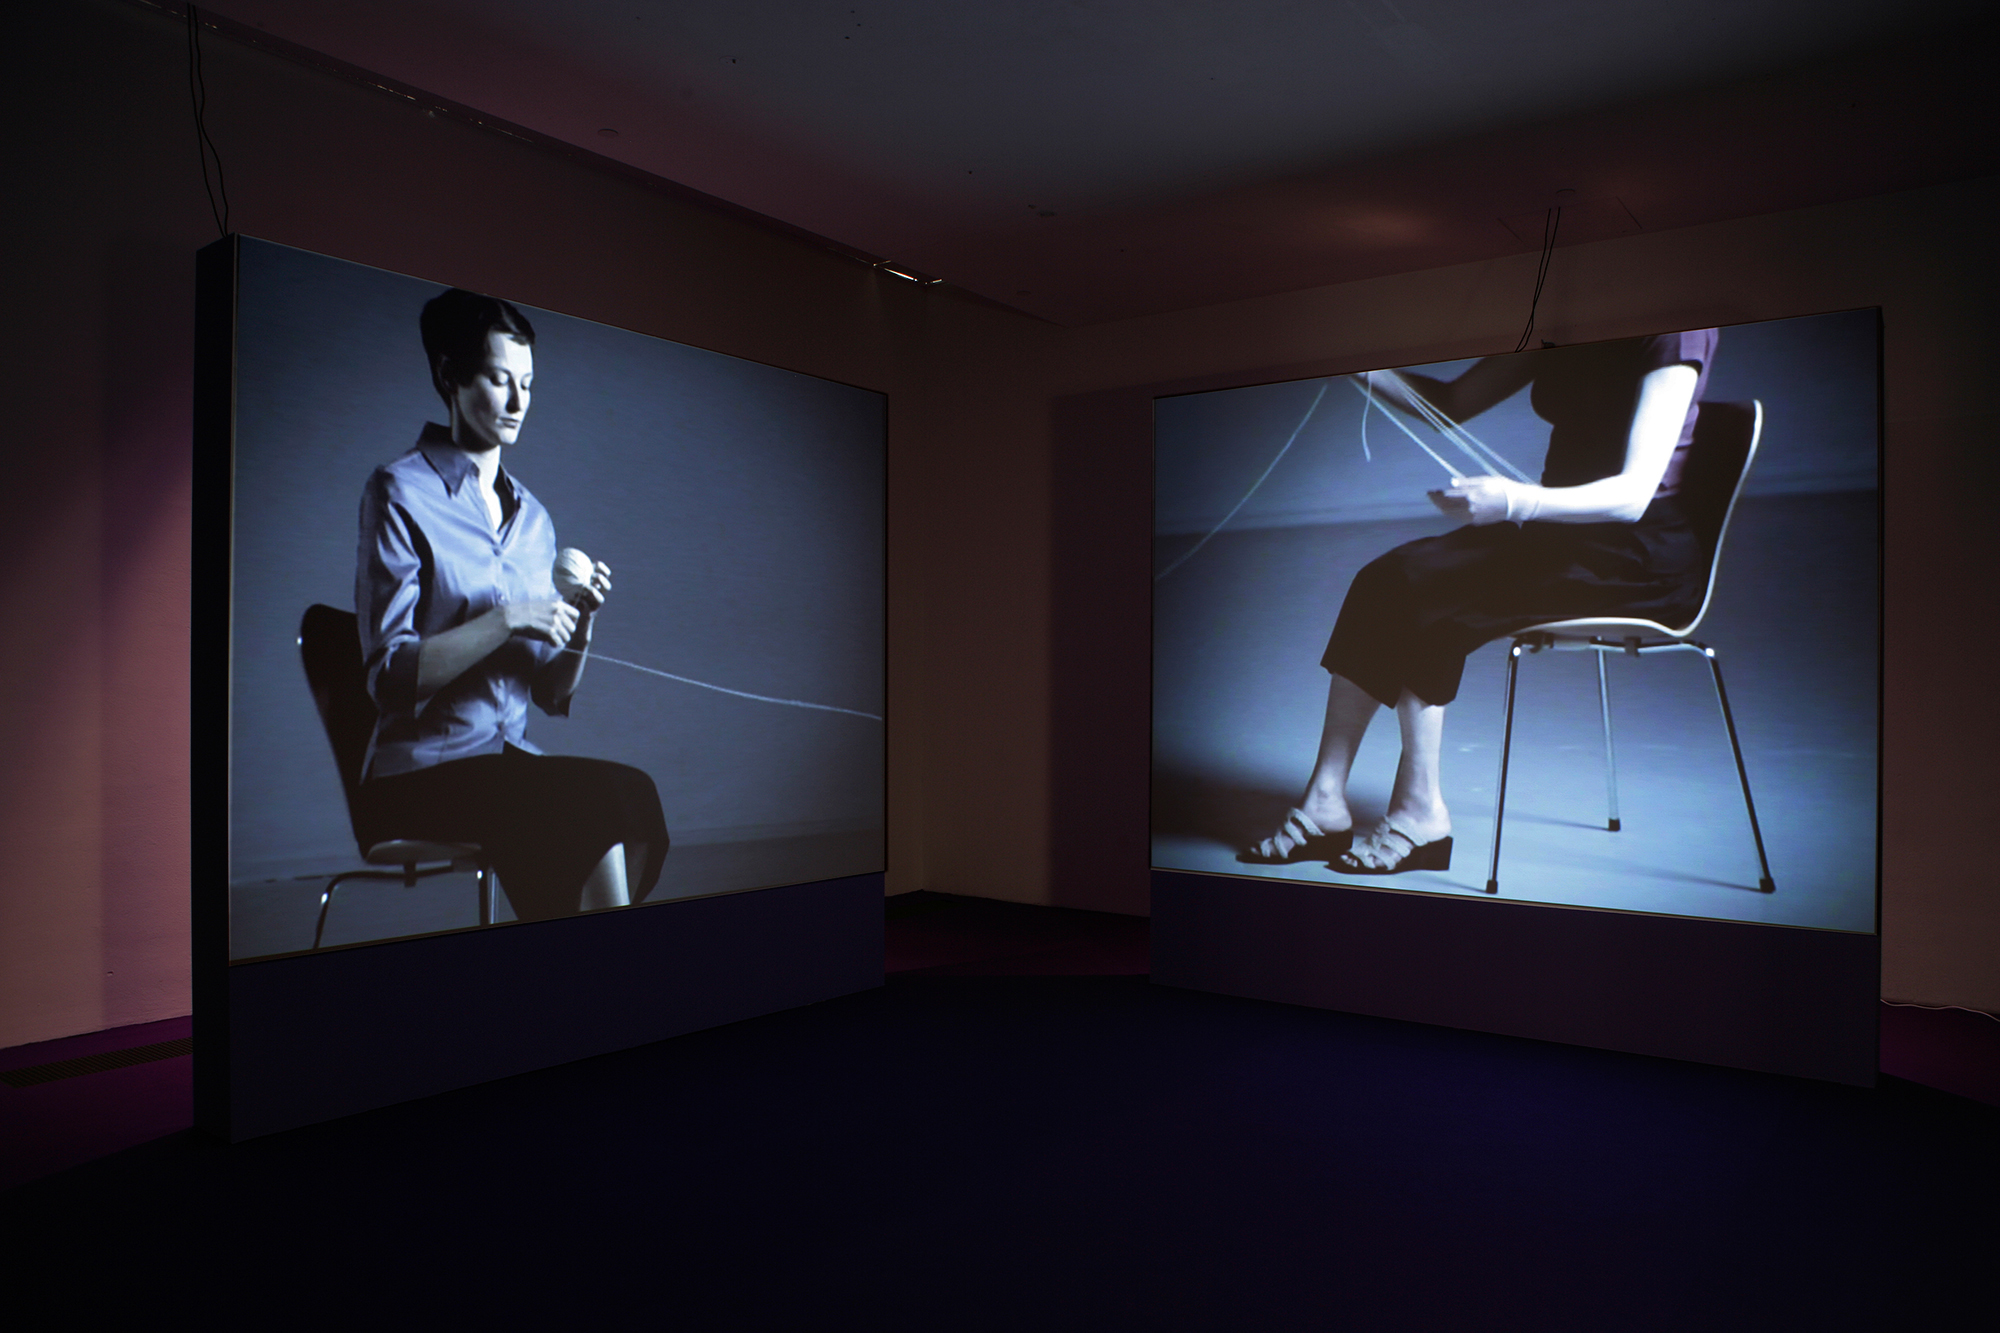 Video Art From Monitor To Gallery Space Spatialisation Of The Moving Image